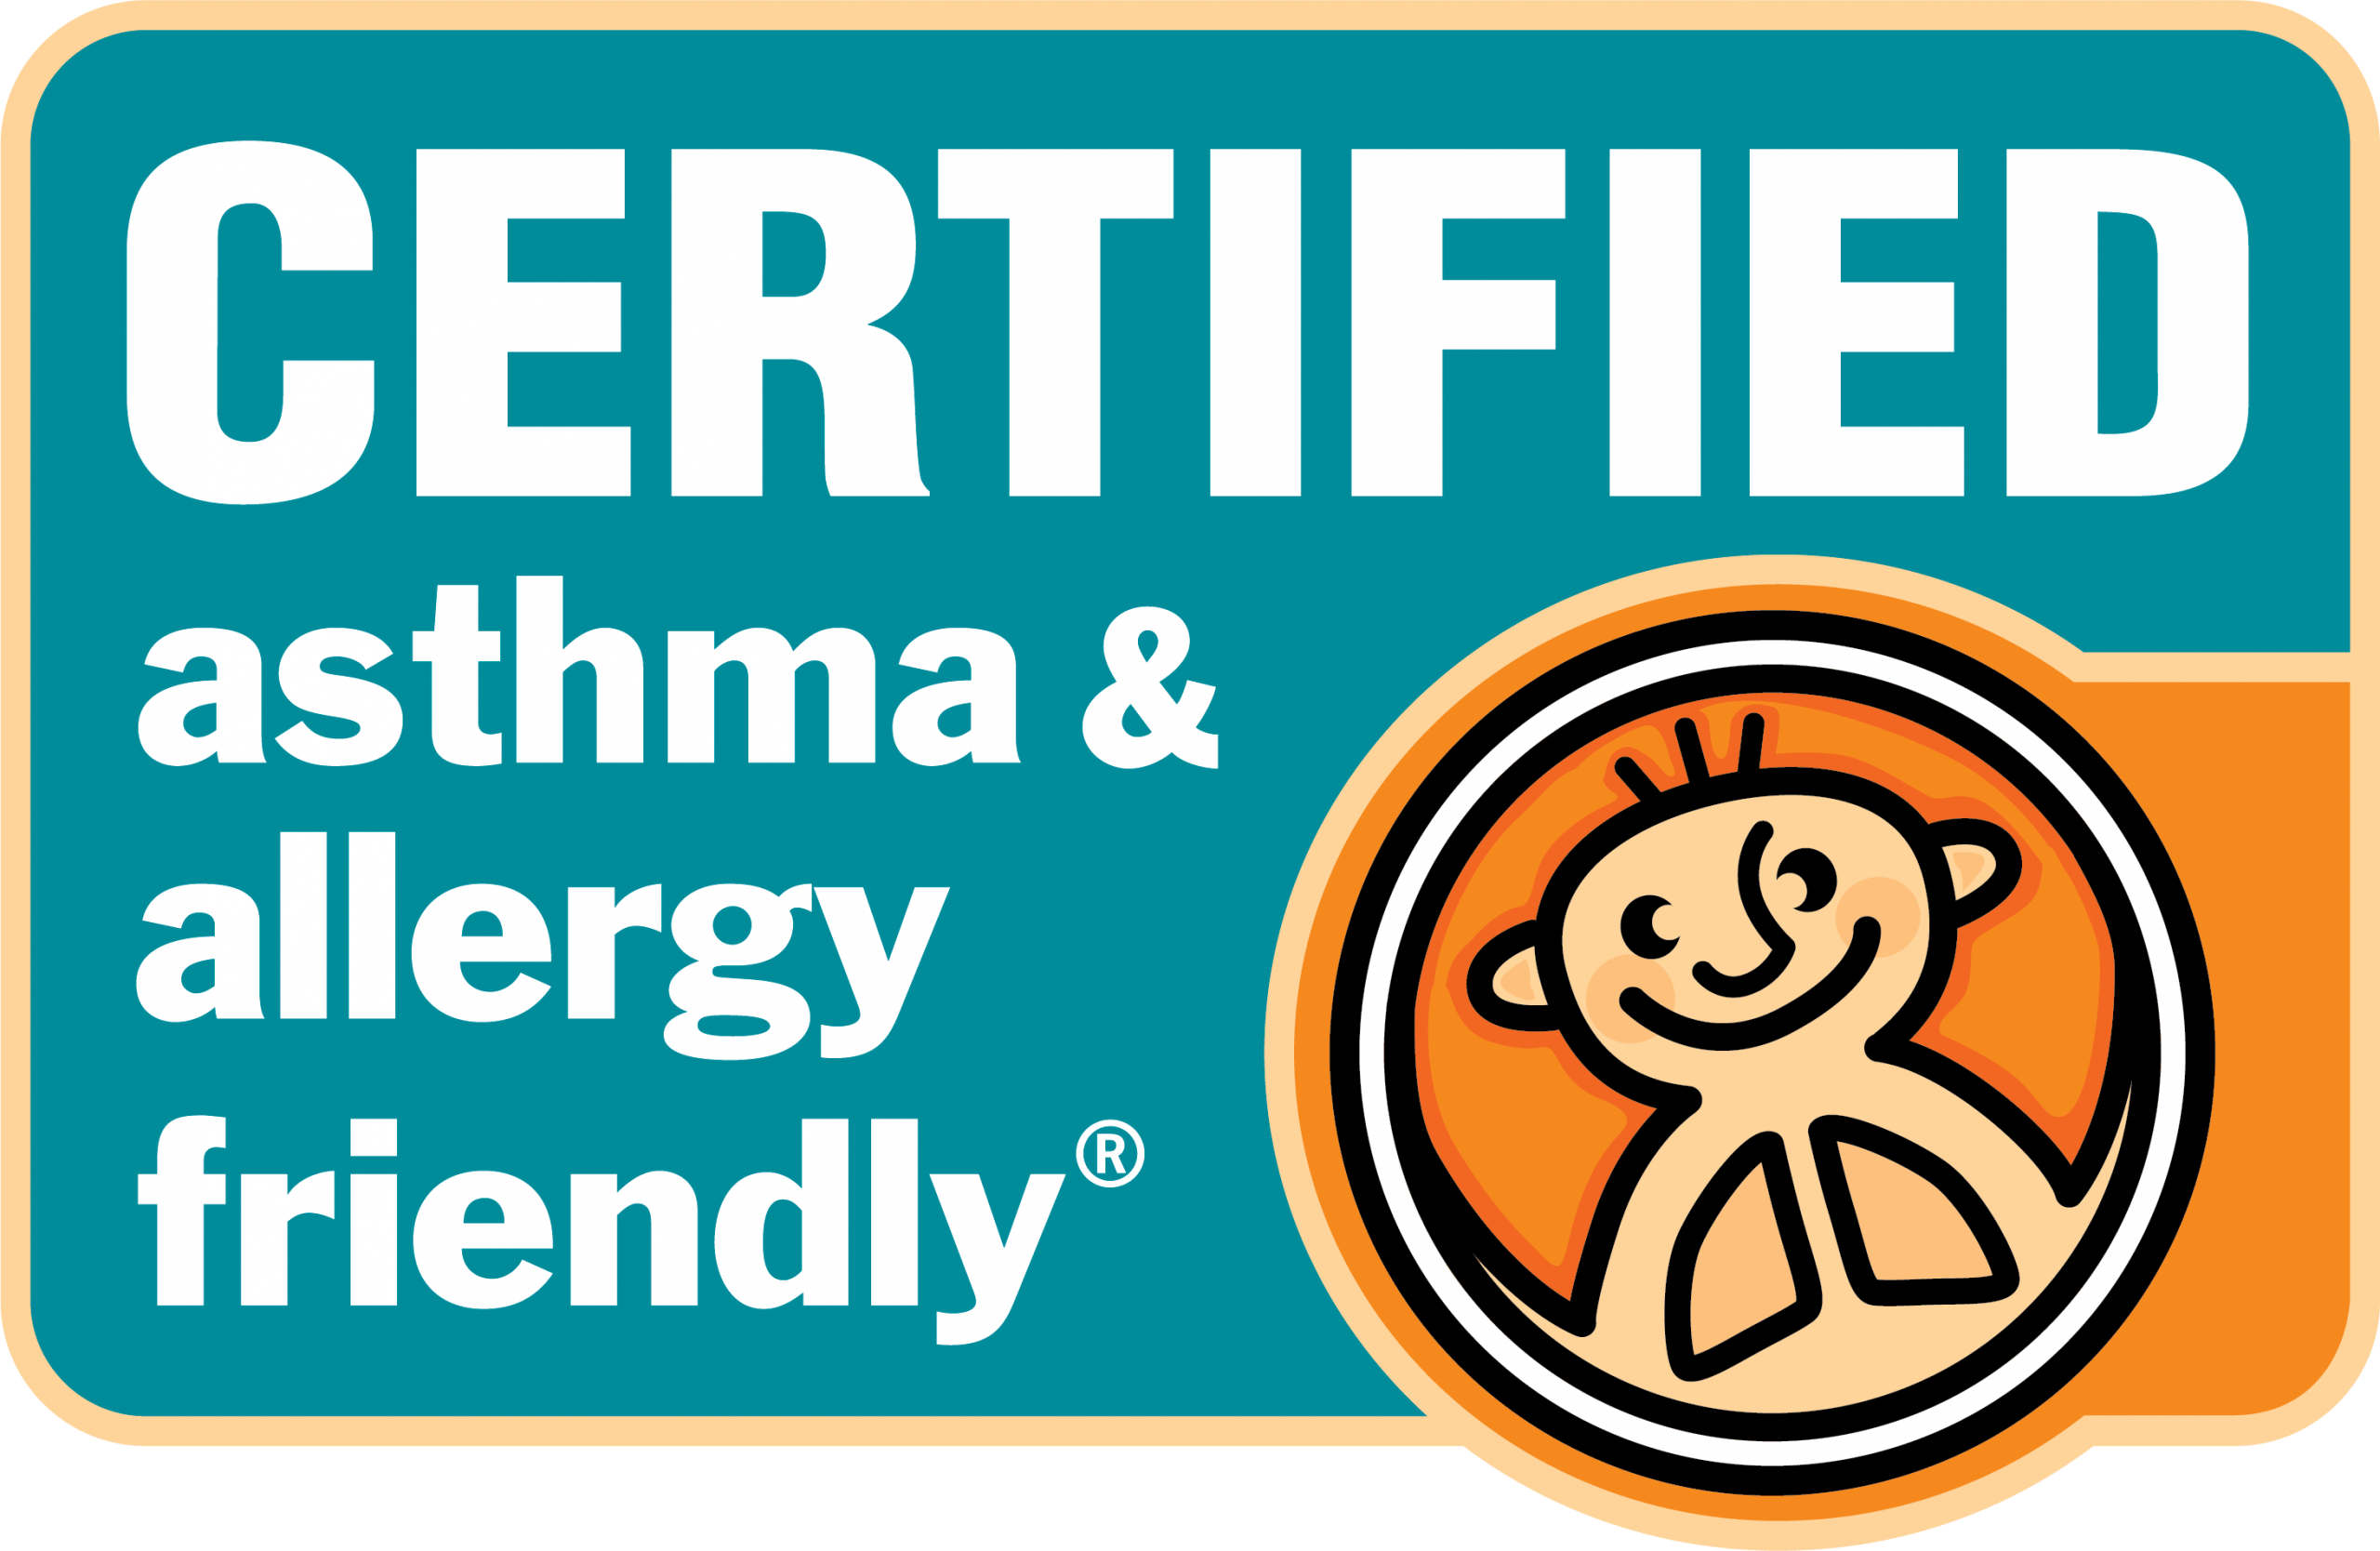 asthma & allergy friendly Certification Program logo